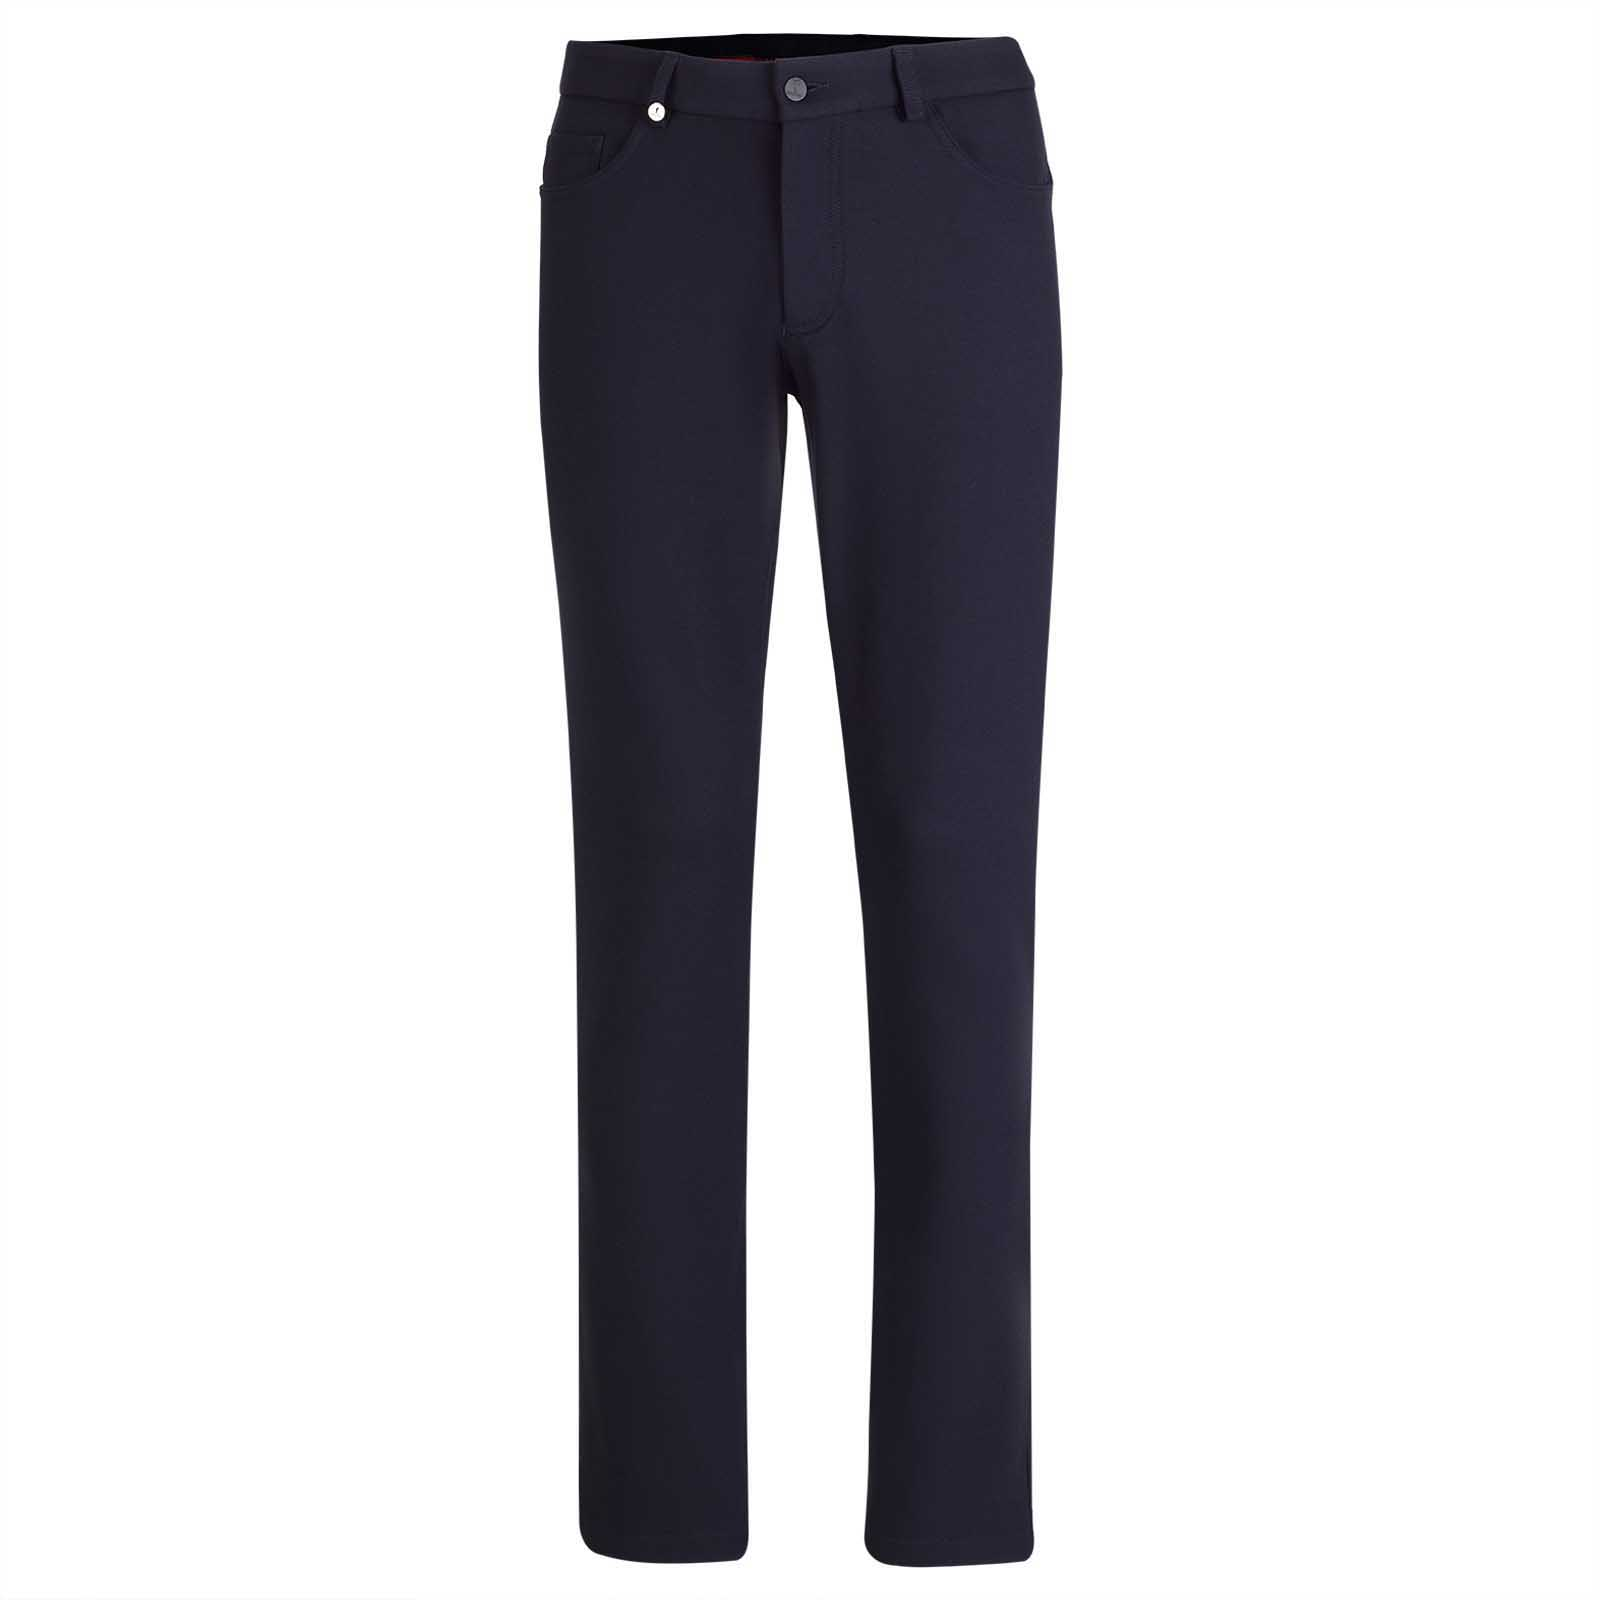 Pantalón de golf de hombre 4-Way-Stretch en corte extra slim fit